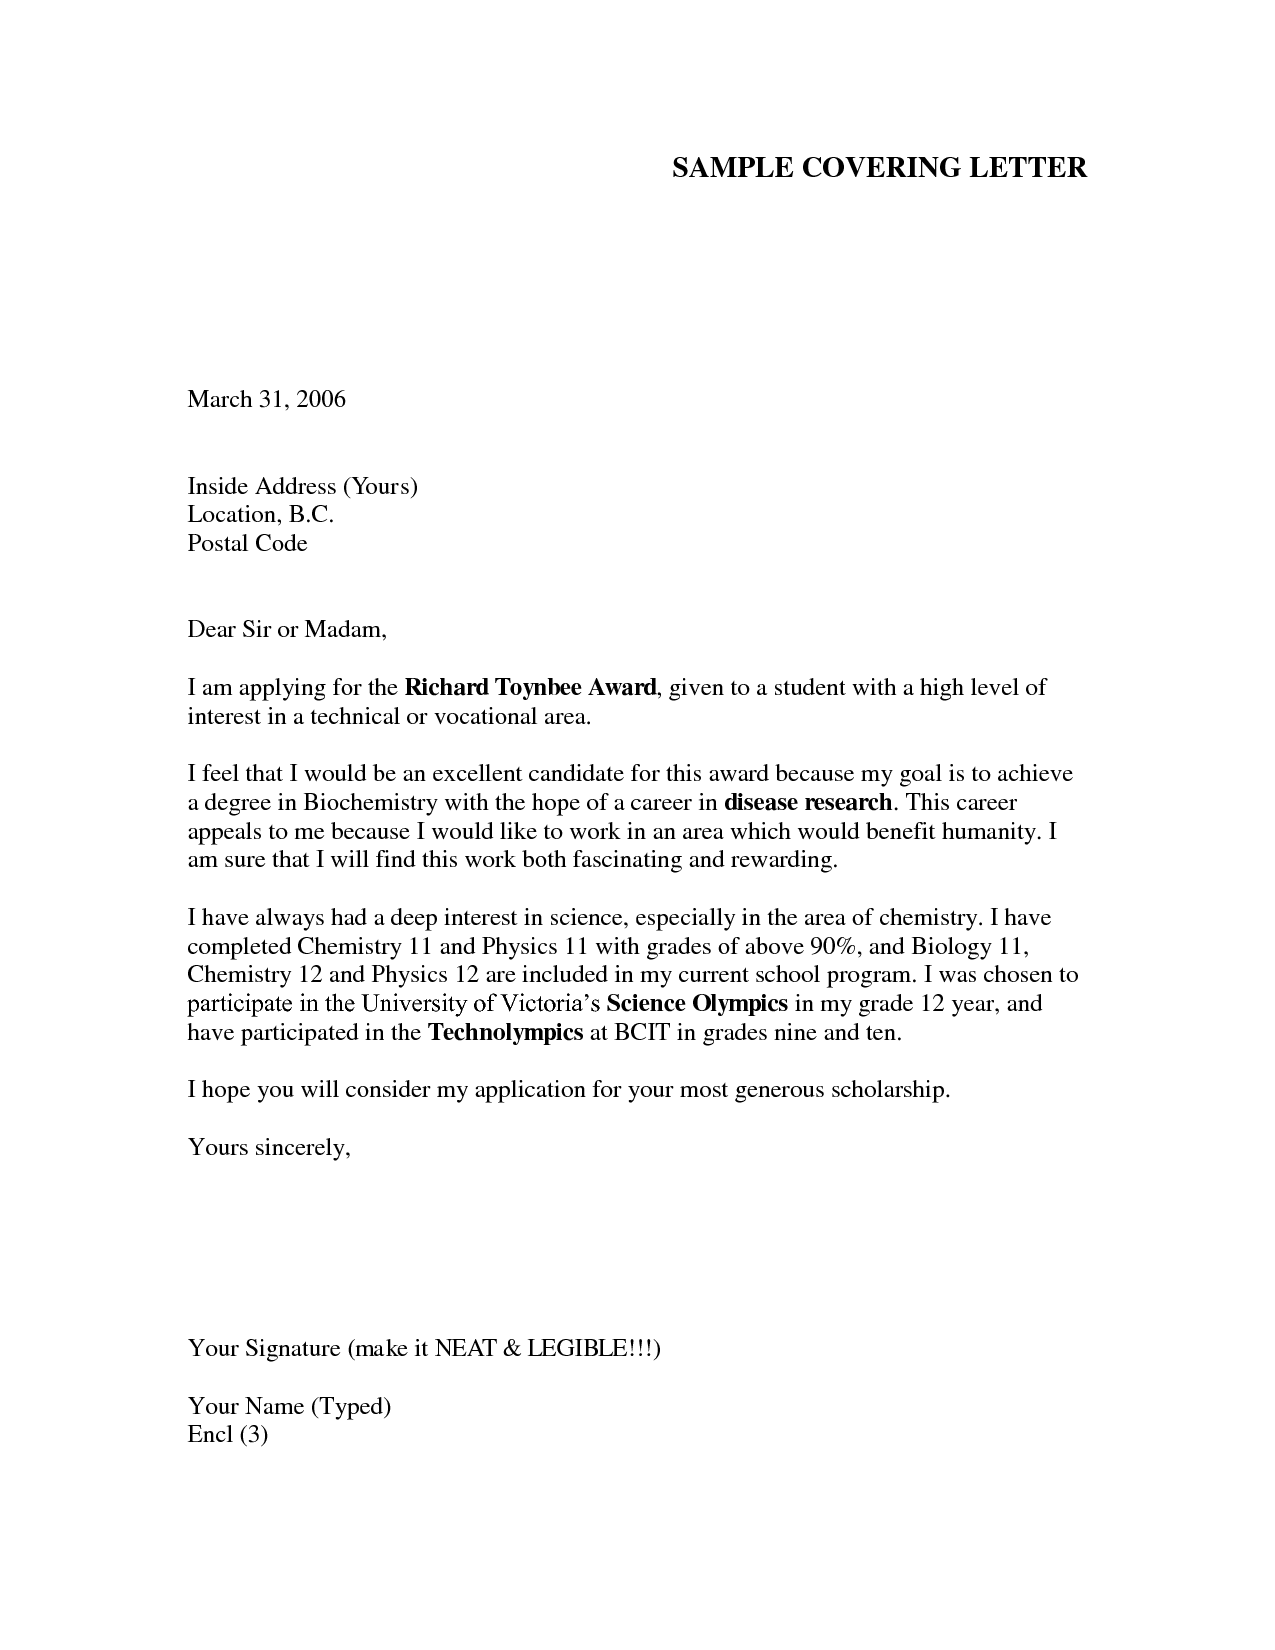 cover letter example for job application cover letter example for job application good cover letter - Examples Of Cover Letters Generally